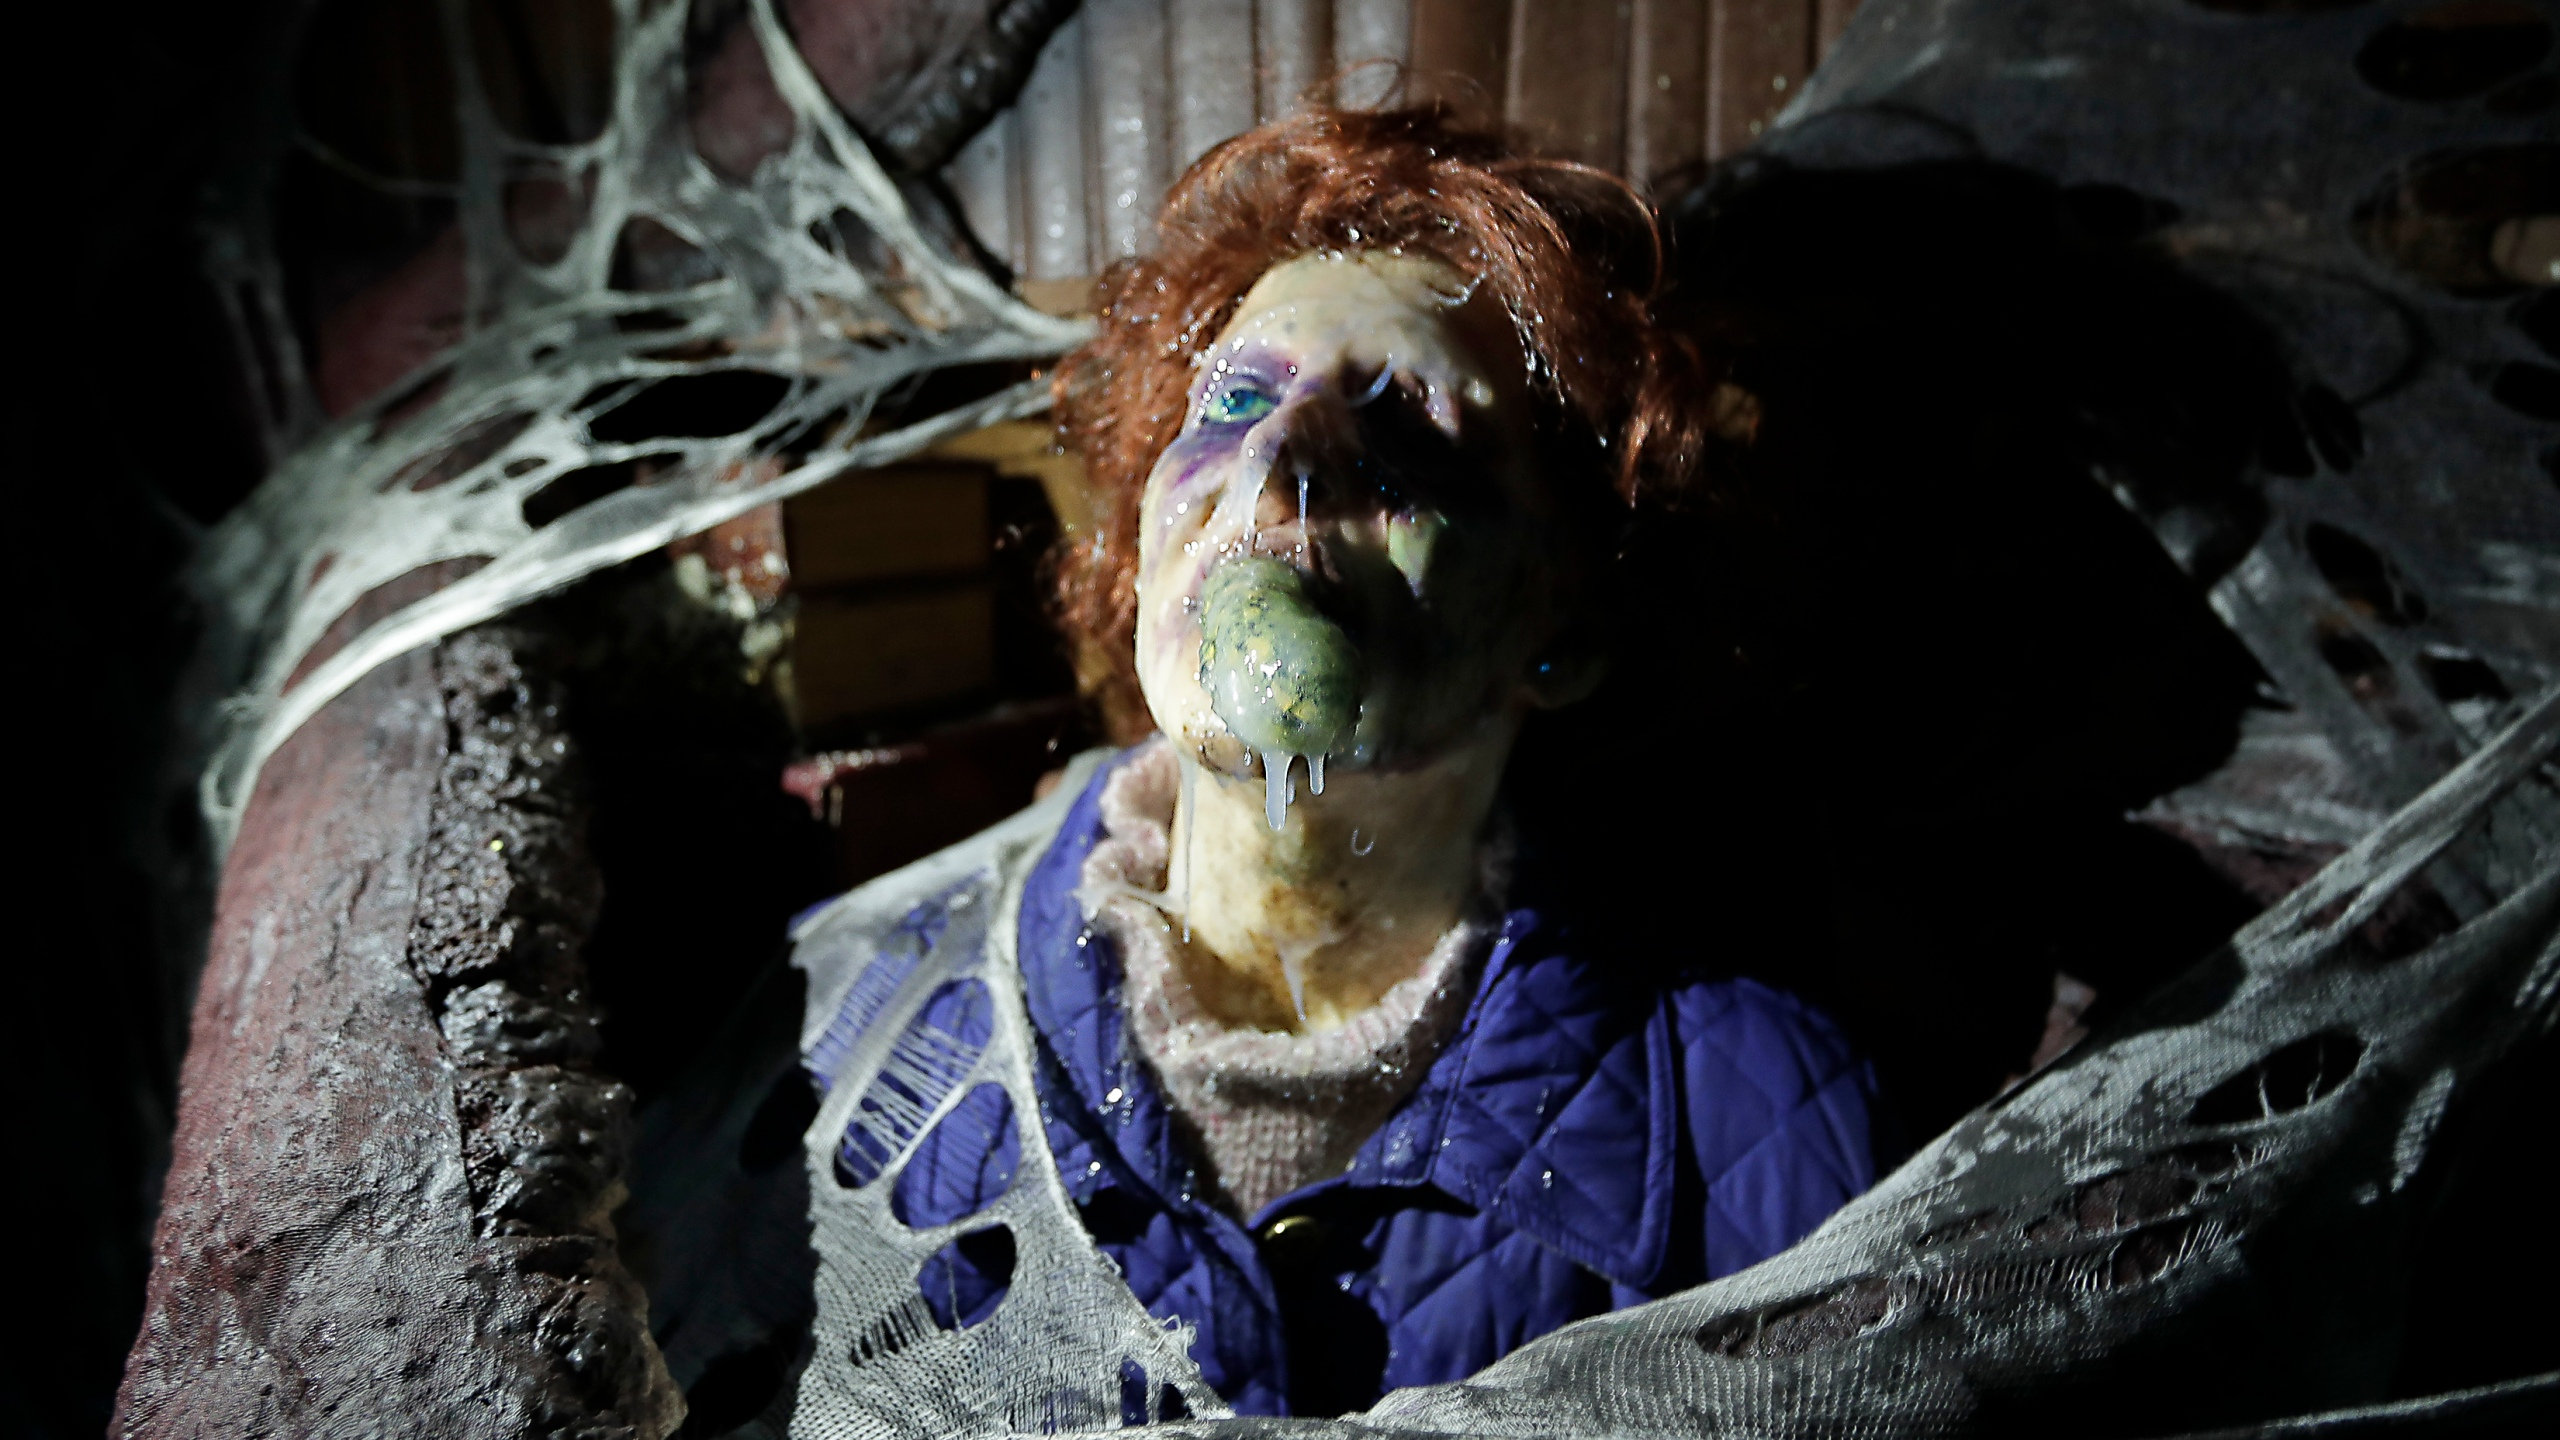 """In this Sept. 12, 2018 file photo, the character Barb appears in grand, gory style in the Stranger Things haunted house during Halloween Horror nights at Universal Studios in Orlando, Fla. After a pandemic-related absence of a year, Halloween Horror Nights are back with haunted houses based on the """"Texas Chainsaw Massacre"""" and """"The Bride of Frankenstein"""" planned for Universal theme parks in California and Florida, the company announced Thursday, July 15, 2021. (AP Photo/John Raoux, File)"""